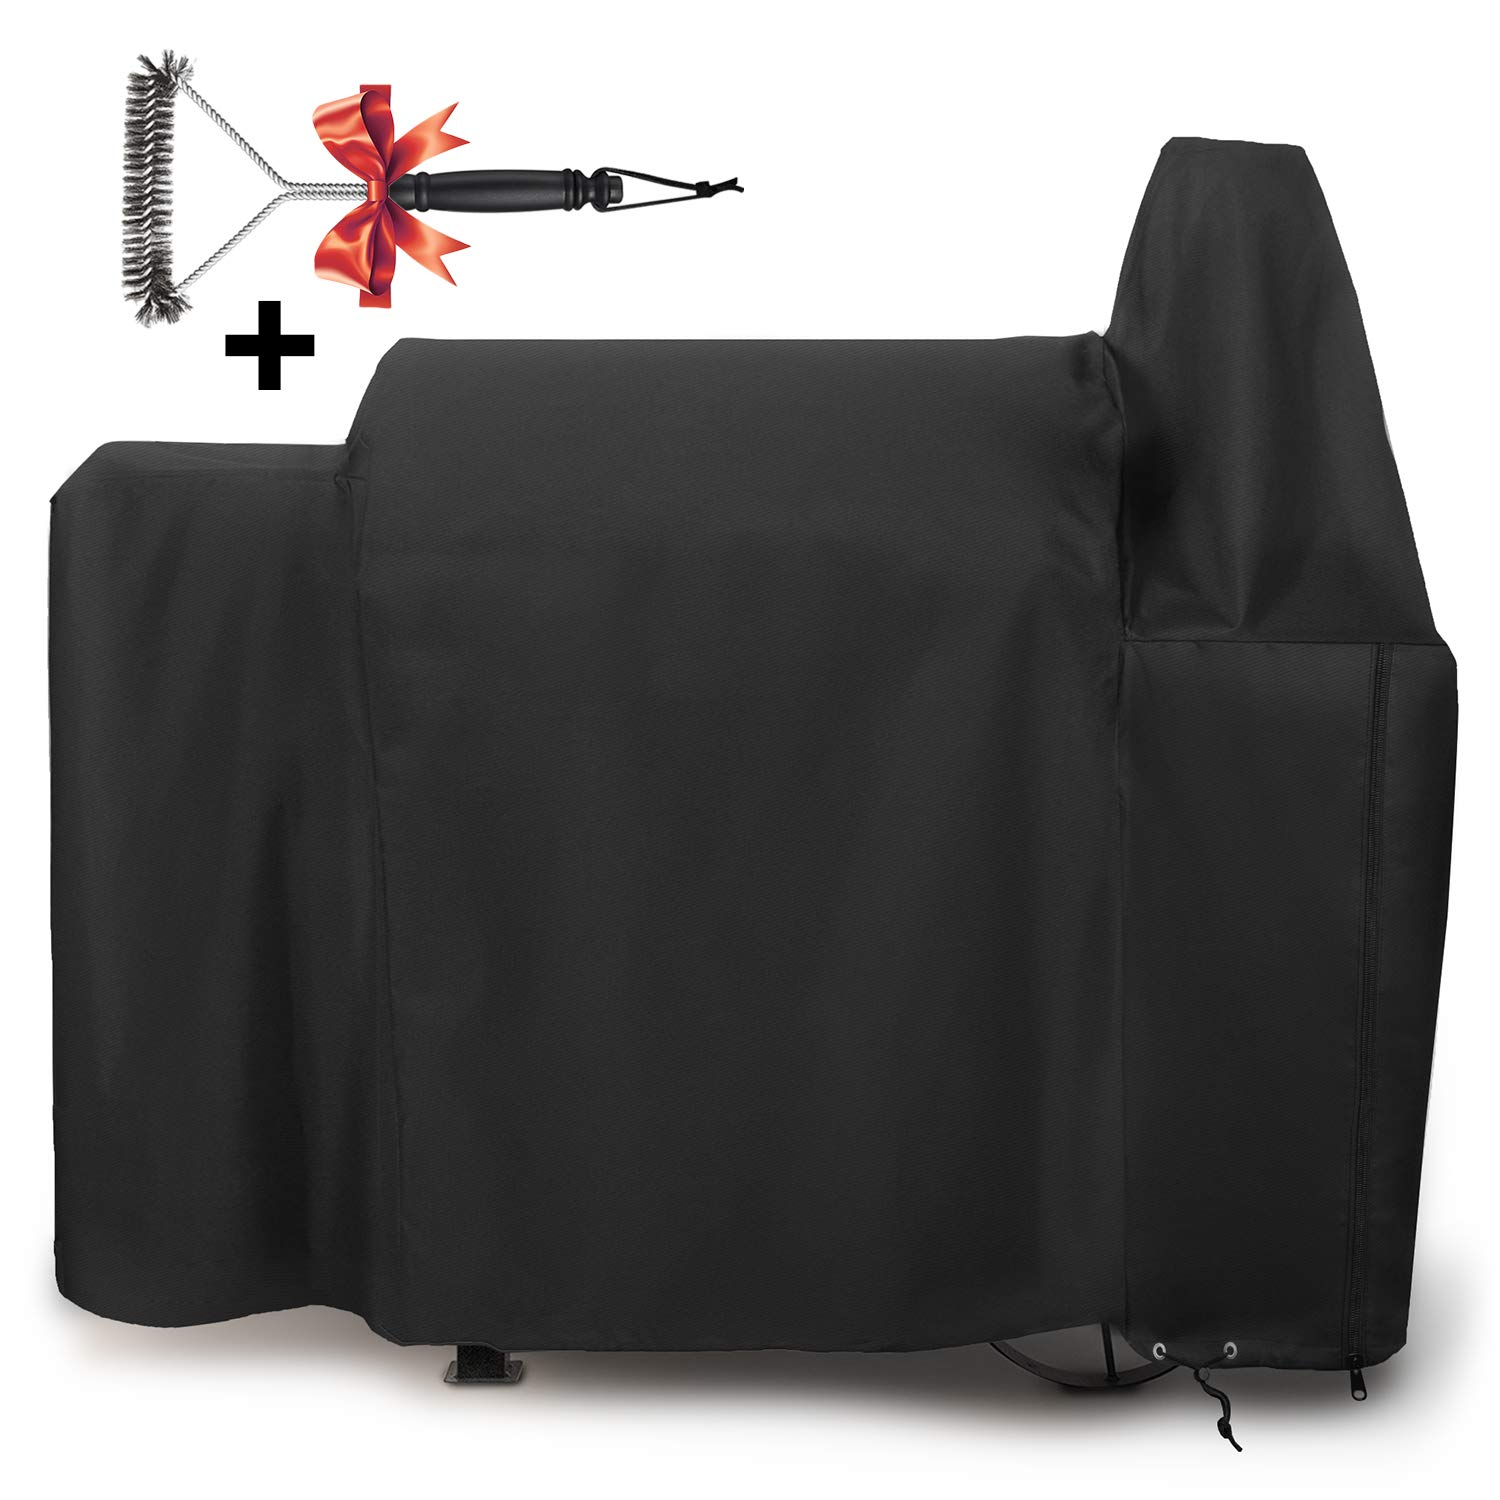 SHINESTAR SS820 Grill Cover for Pit Boss 820 Deluxe Pellet Grill, Heavy Duty and Waterproof Grill Cover Fits for Pit Boss 820D Wood Pellet Grill with Zipper by SHINESTAR